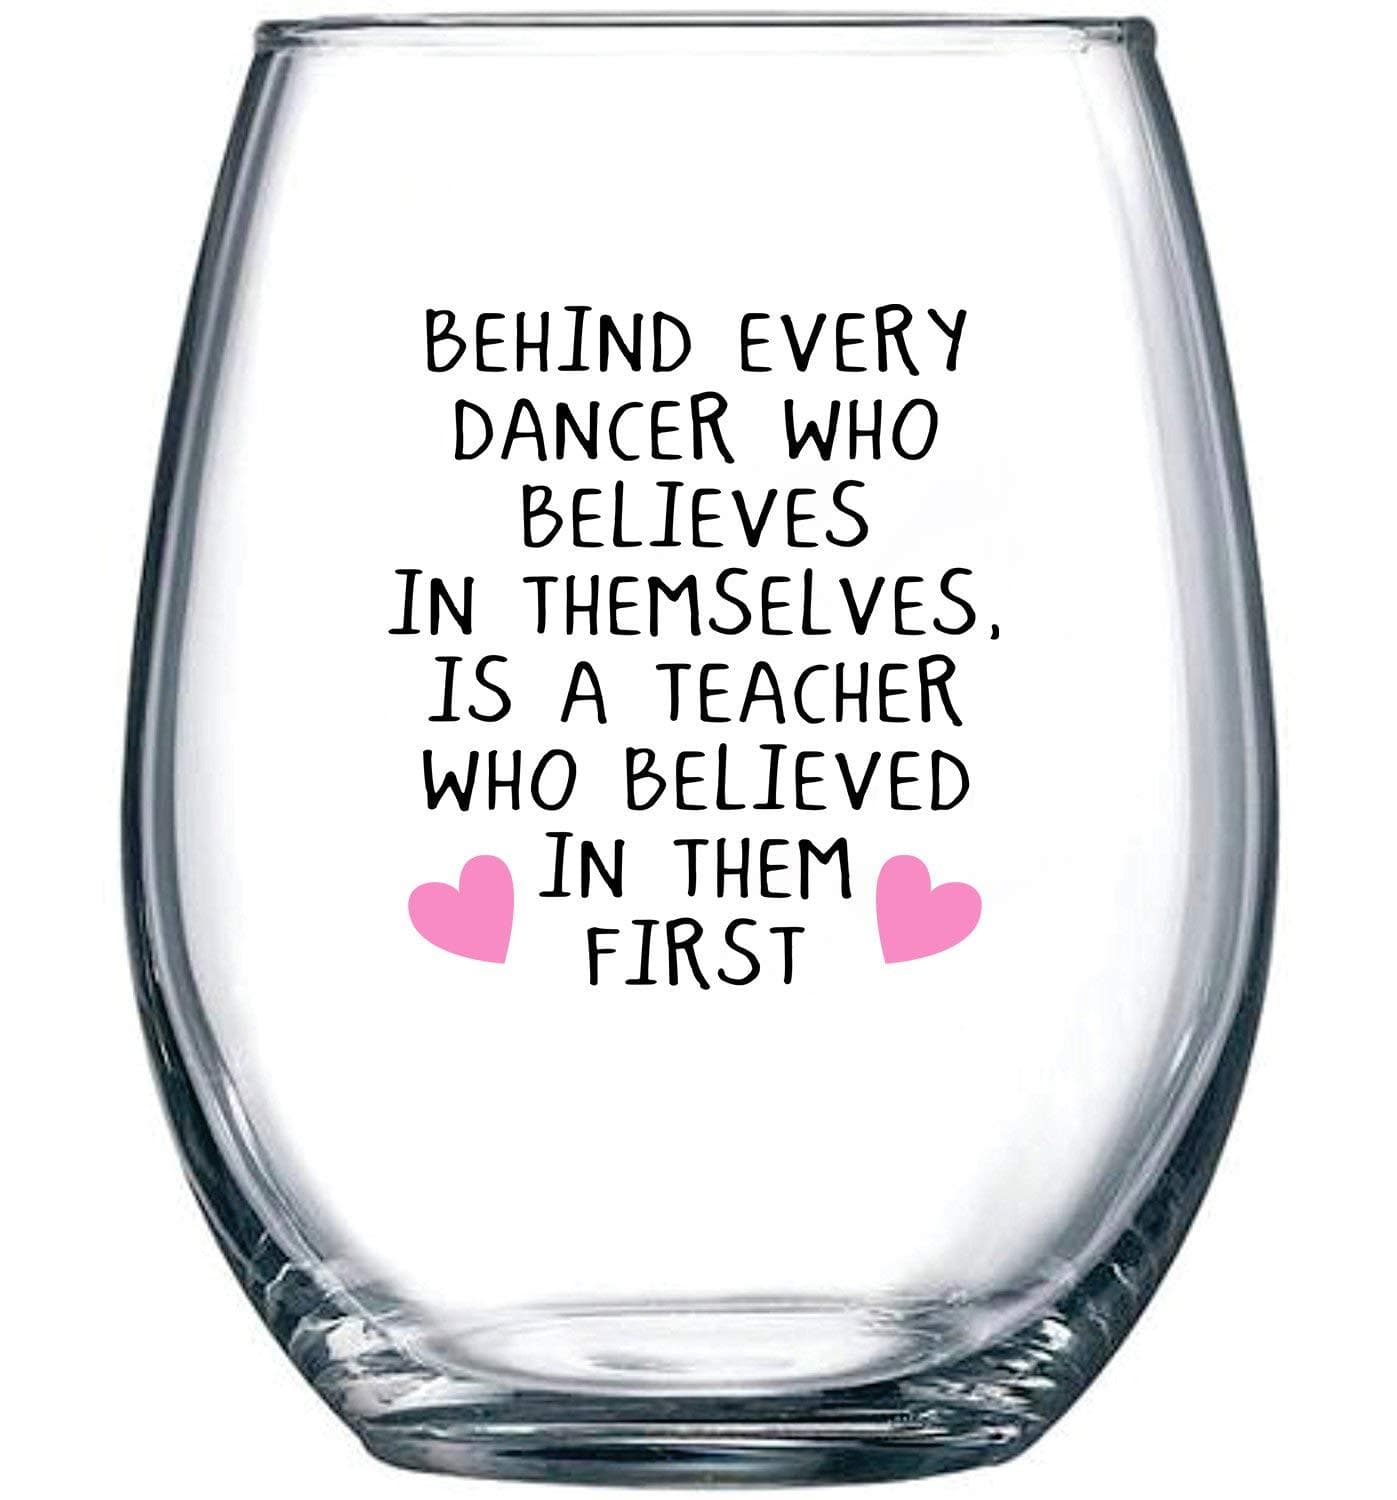 Behind Every Dancer Who Believes in Themselves Wine Glass